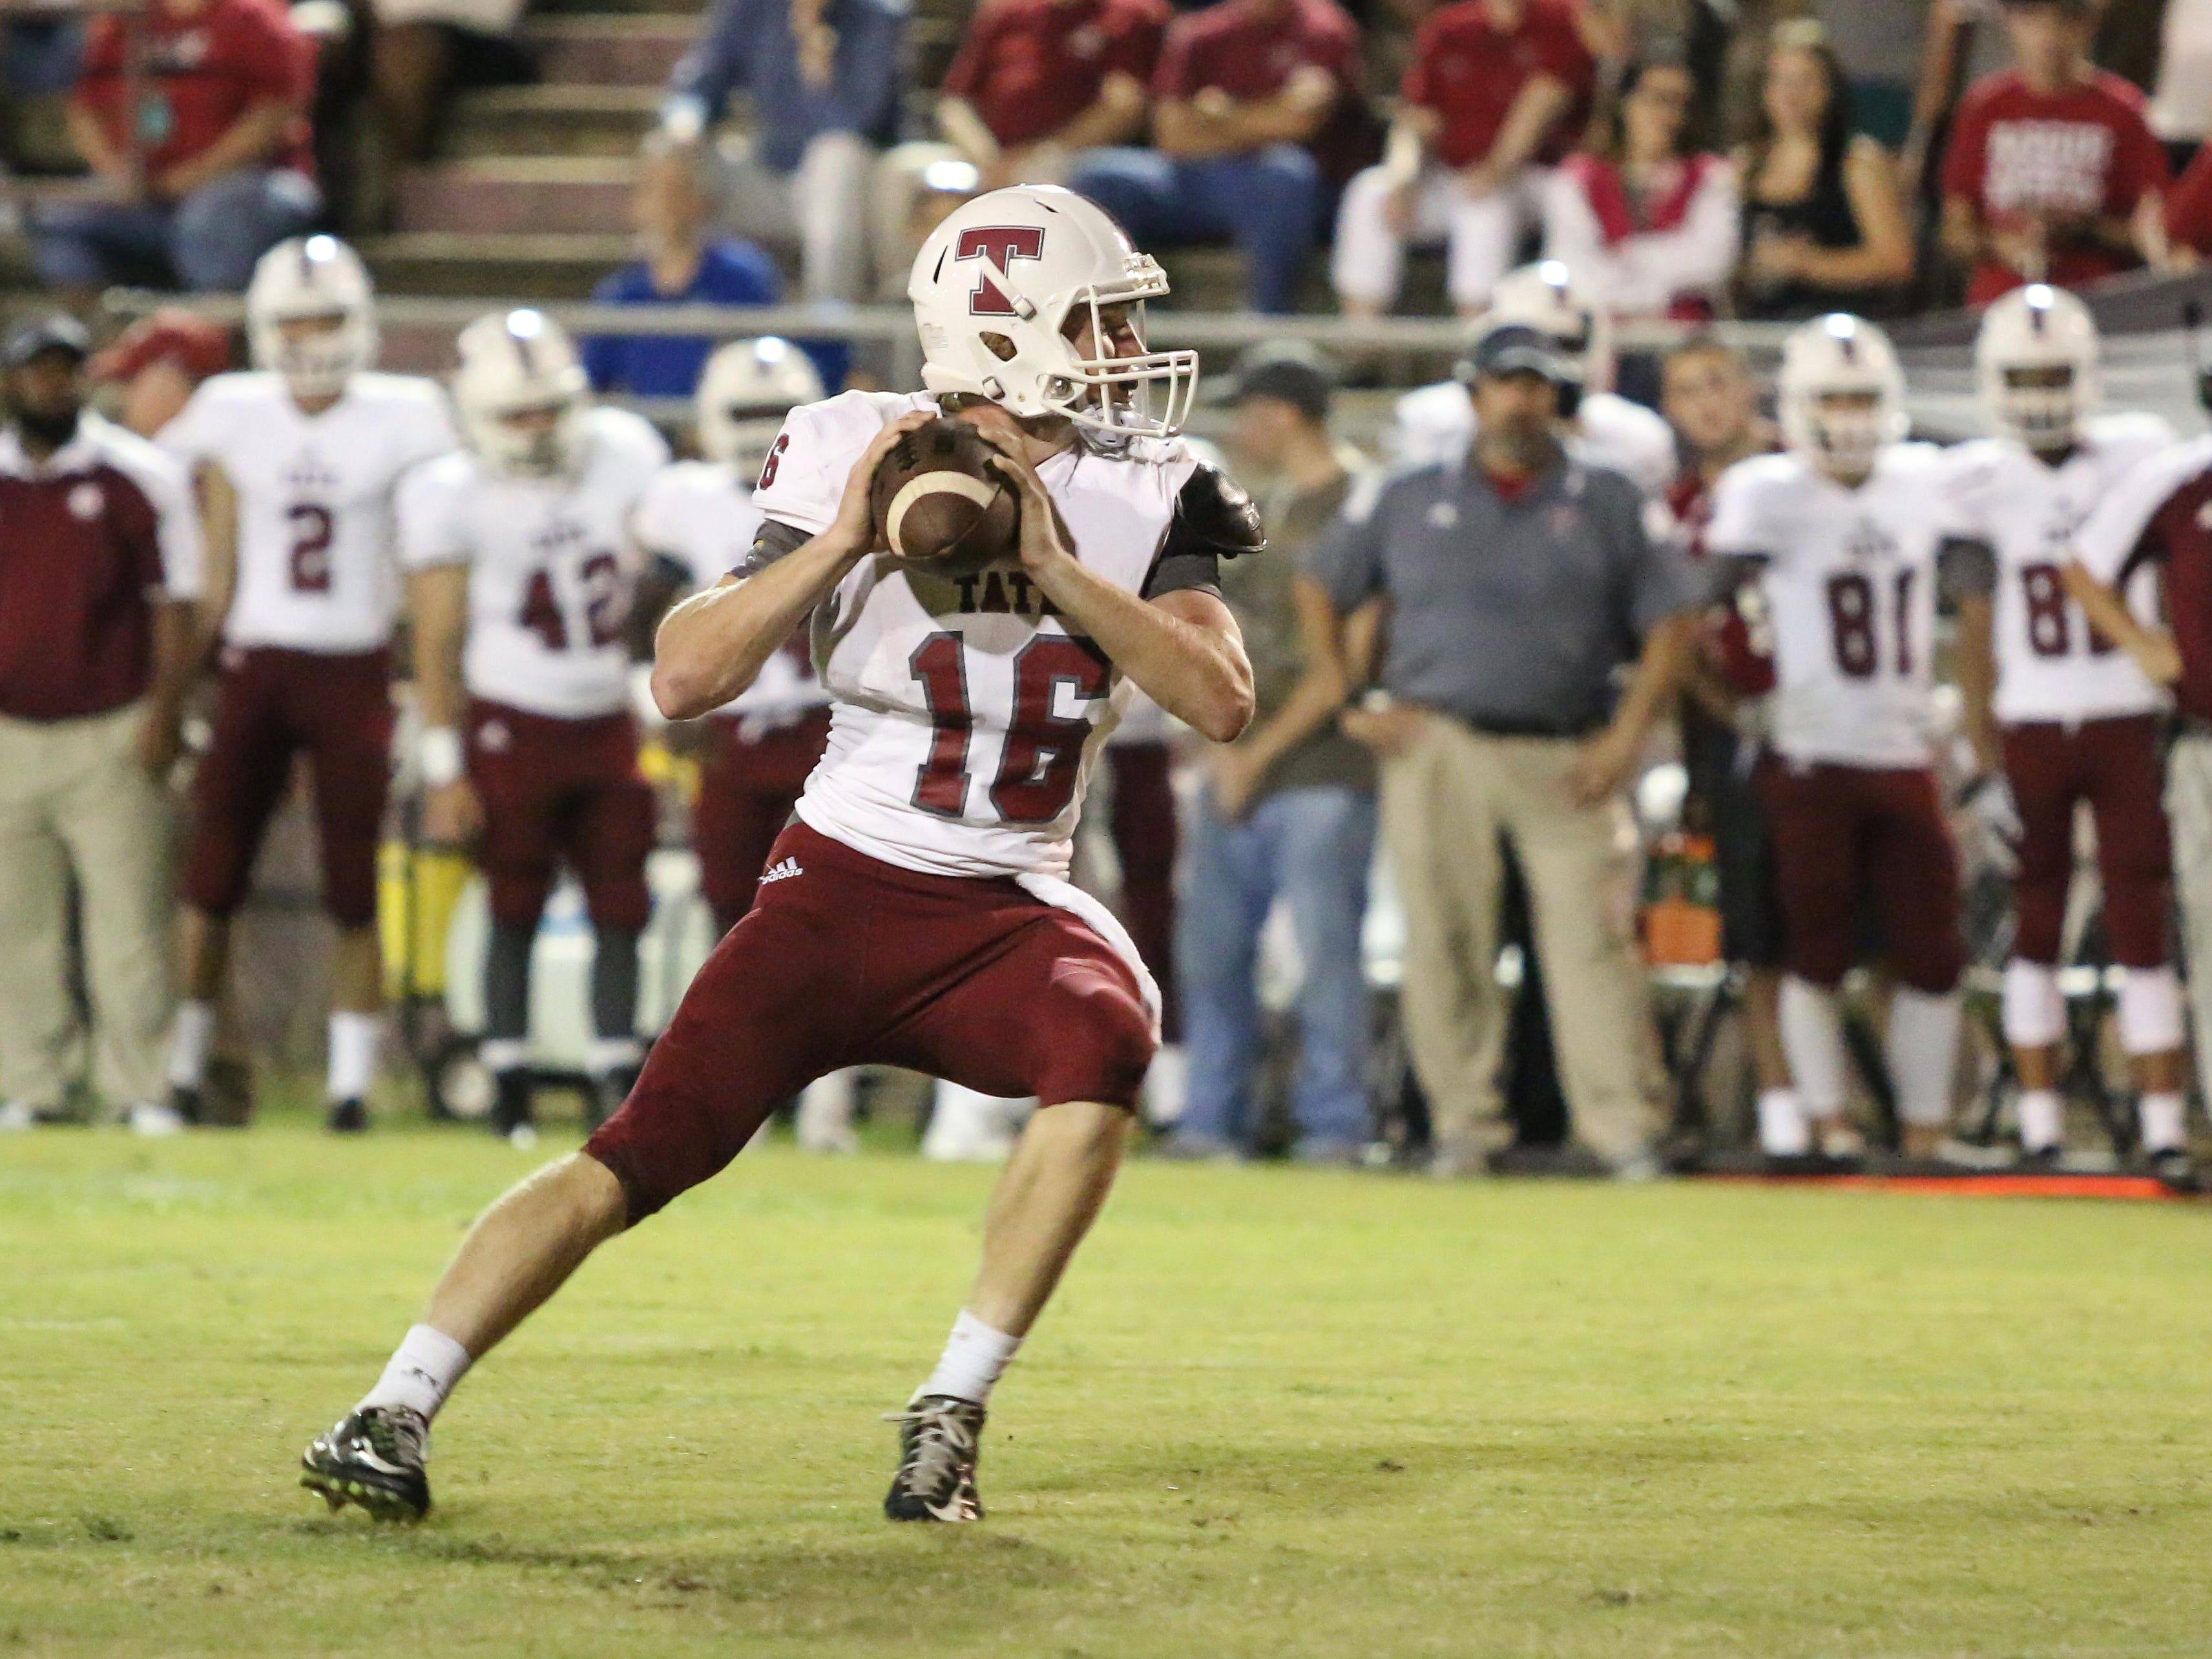 Tate quarterback Jake Henry (16) steps back and prepares to throw a touchdown pass to Rodriguez Smith during the opening drive of the game Friday night at Pensacola High School.